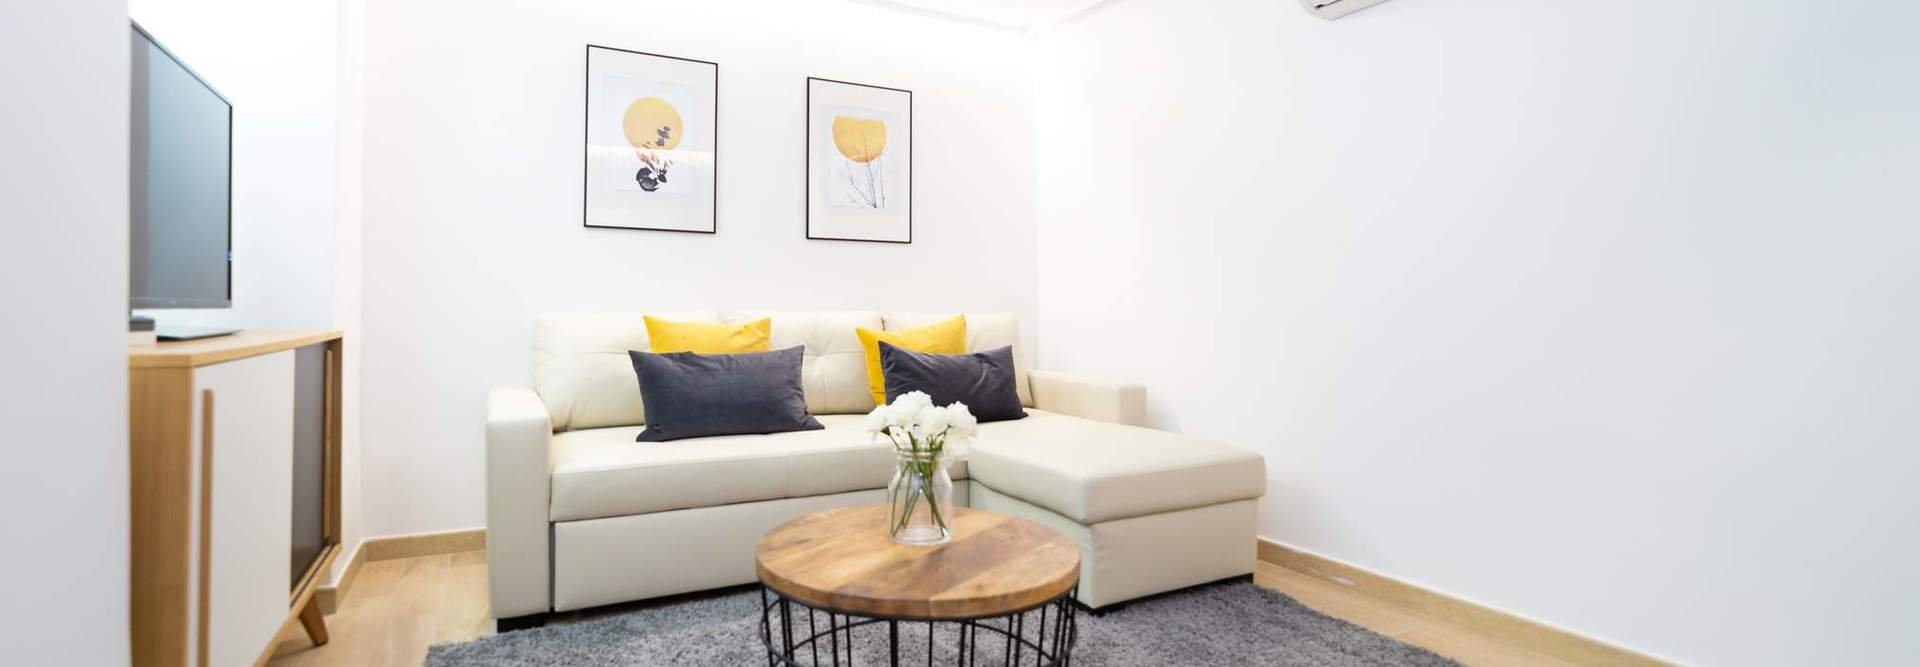 Home alquiler apartamentos madrid mad4rent 05